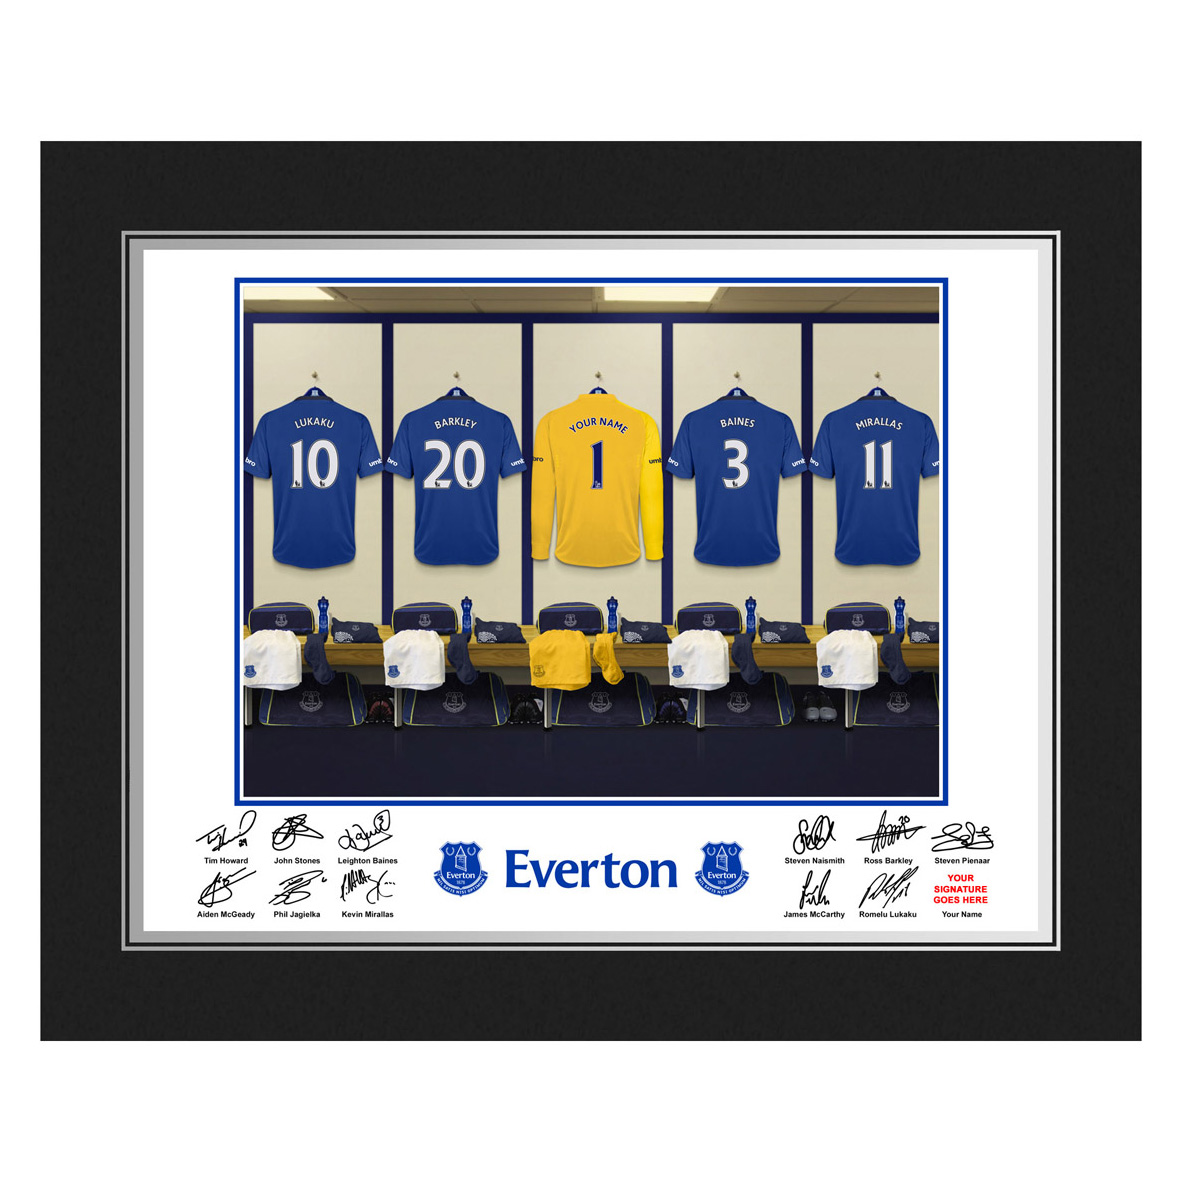 Everton Personalised Goal Keeper Dressing Room Photo in Presentation Folder